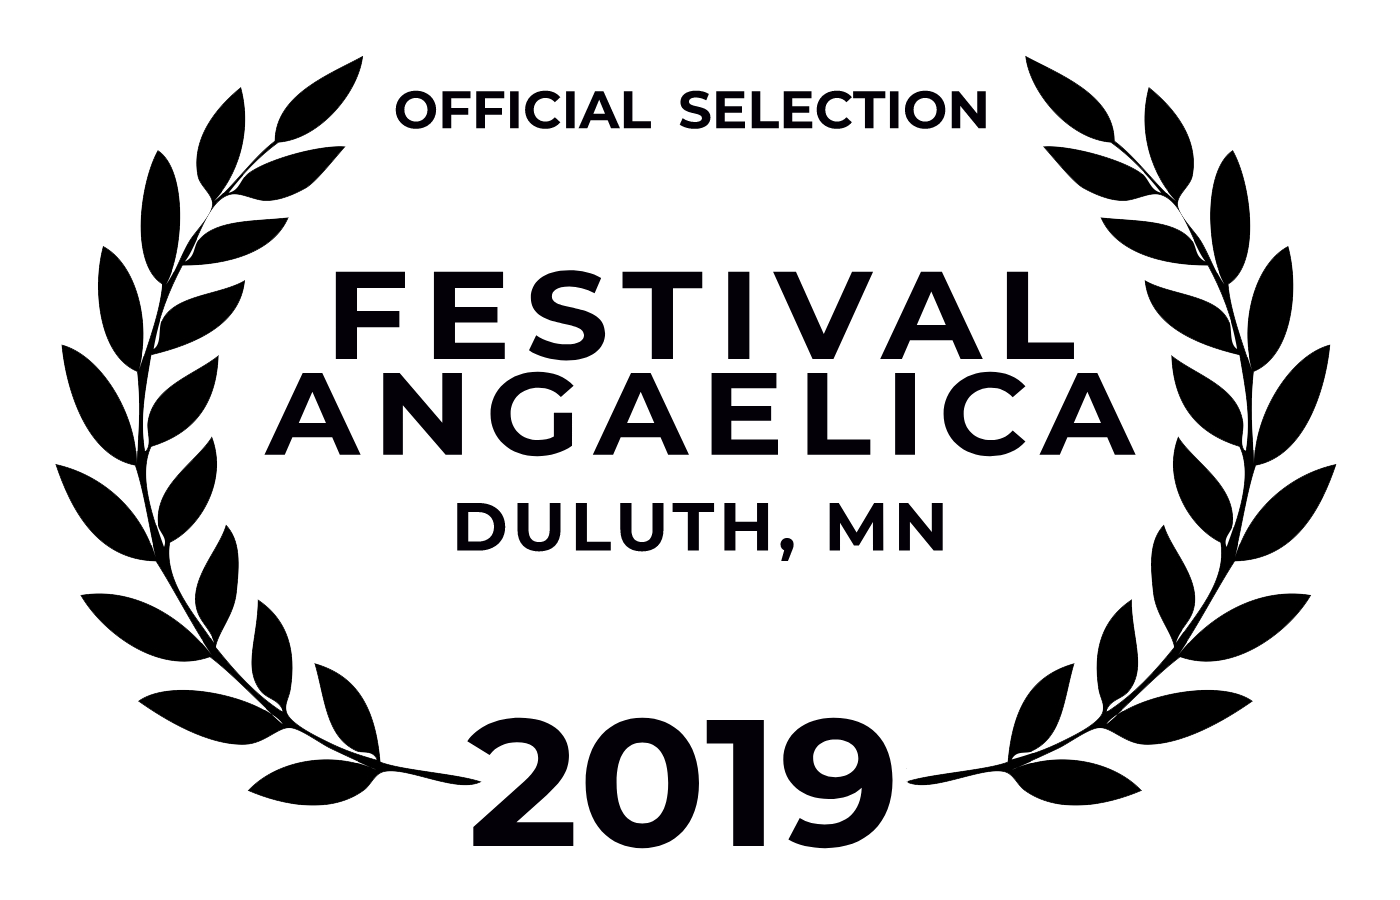 Festival_Angaelica_2019_Official_Selecti